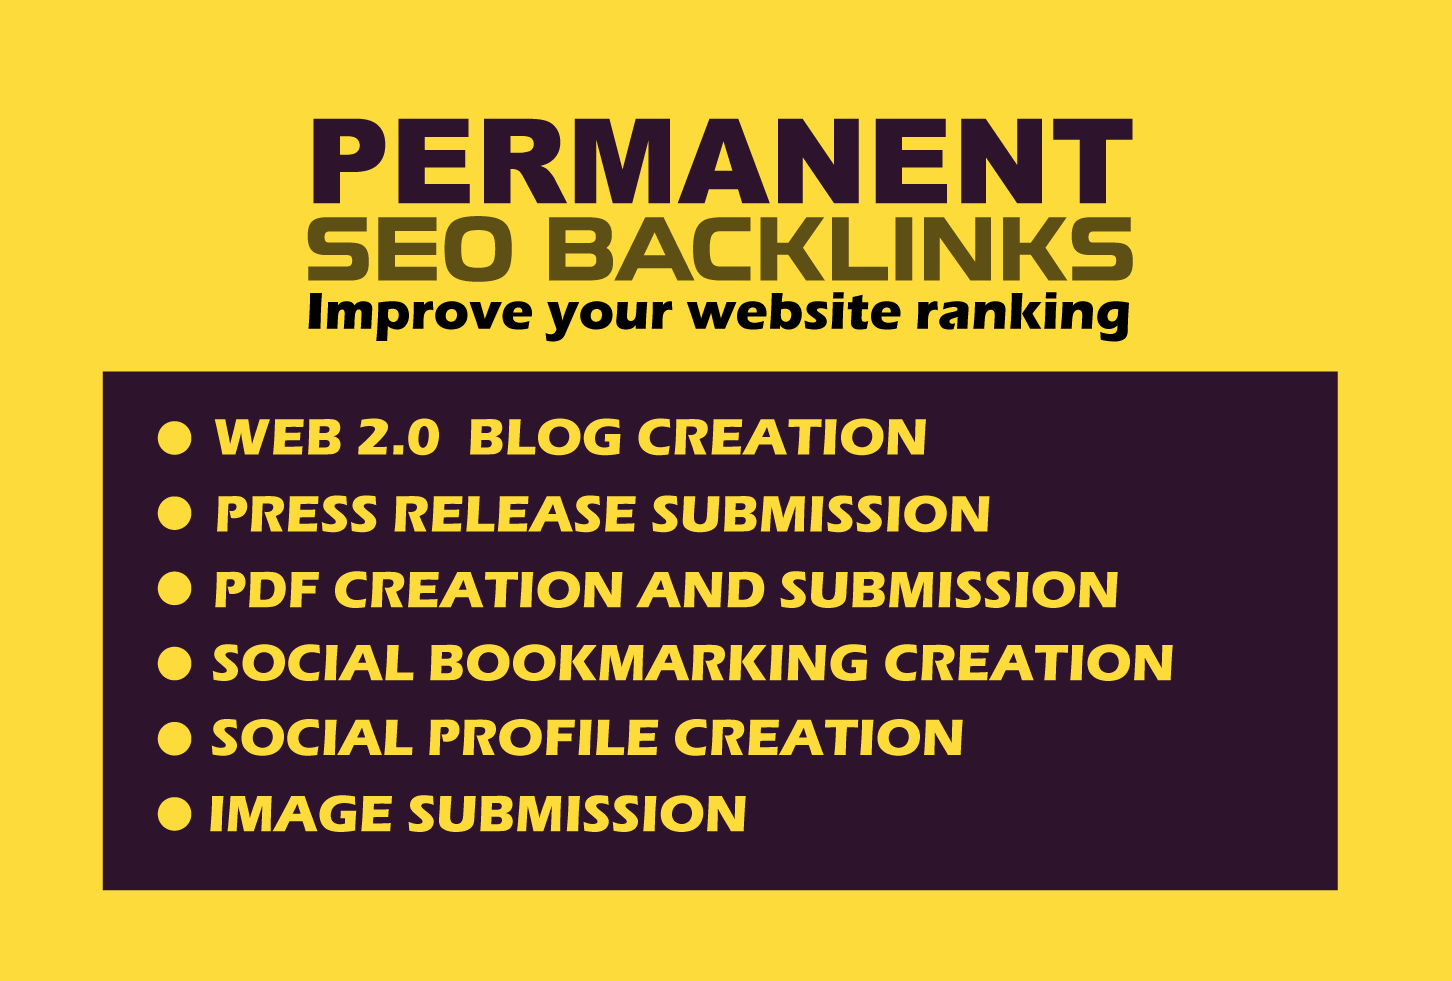 Permanent SEO backlinks with link building for high google ranking